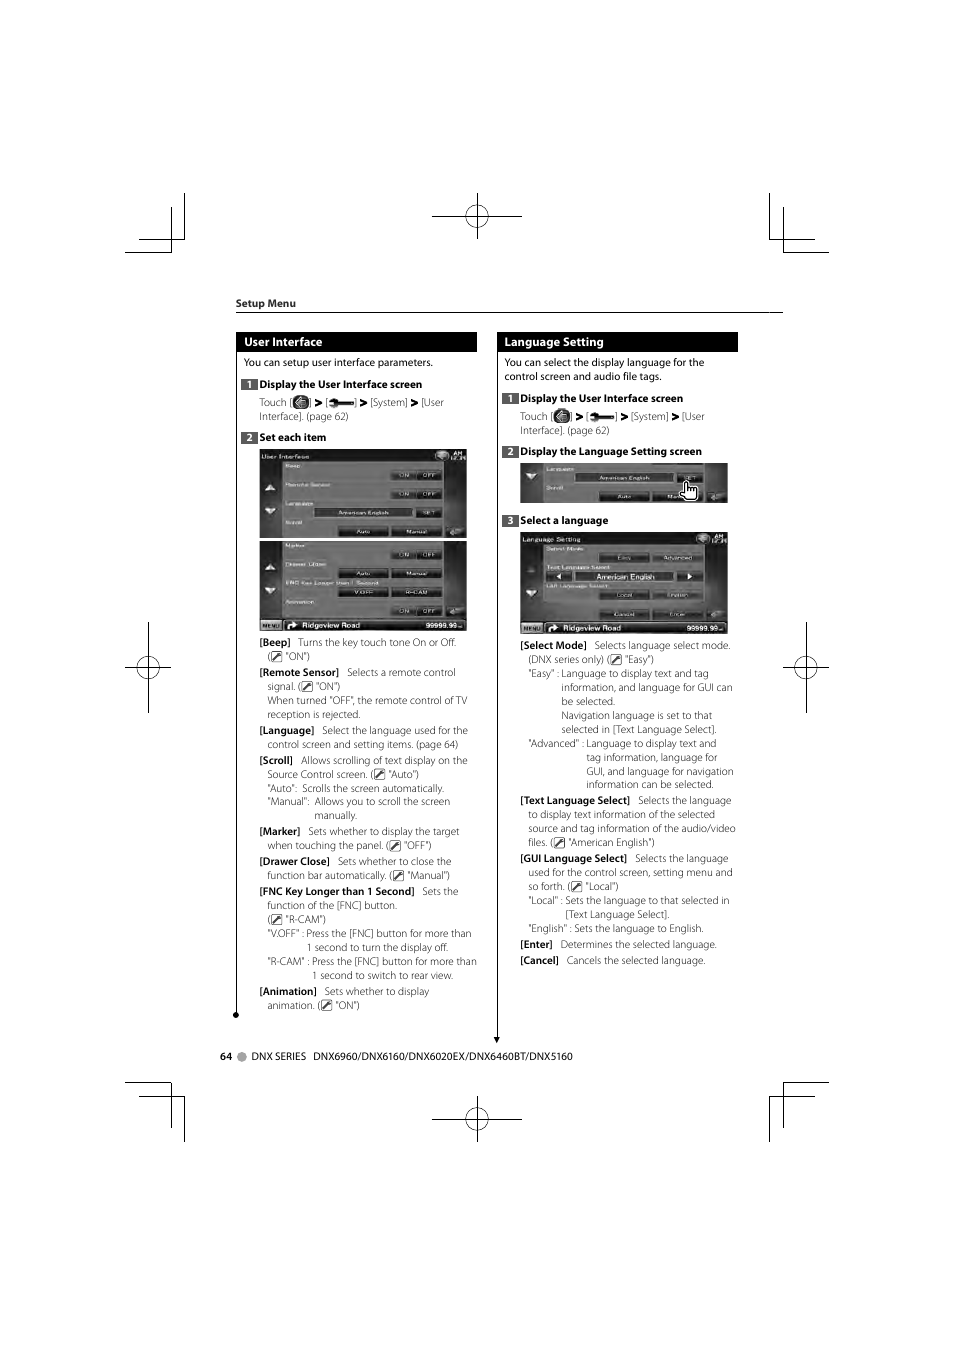 kenwood dnx6160 user manual page 64 100 also for dnx5160 rh manualsdir com